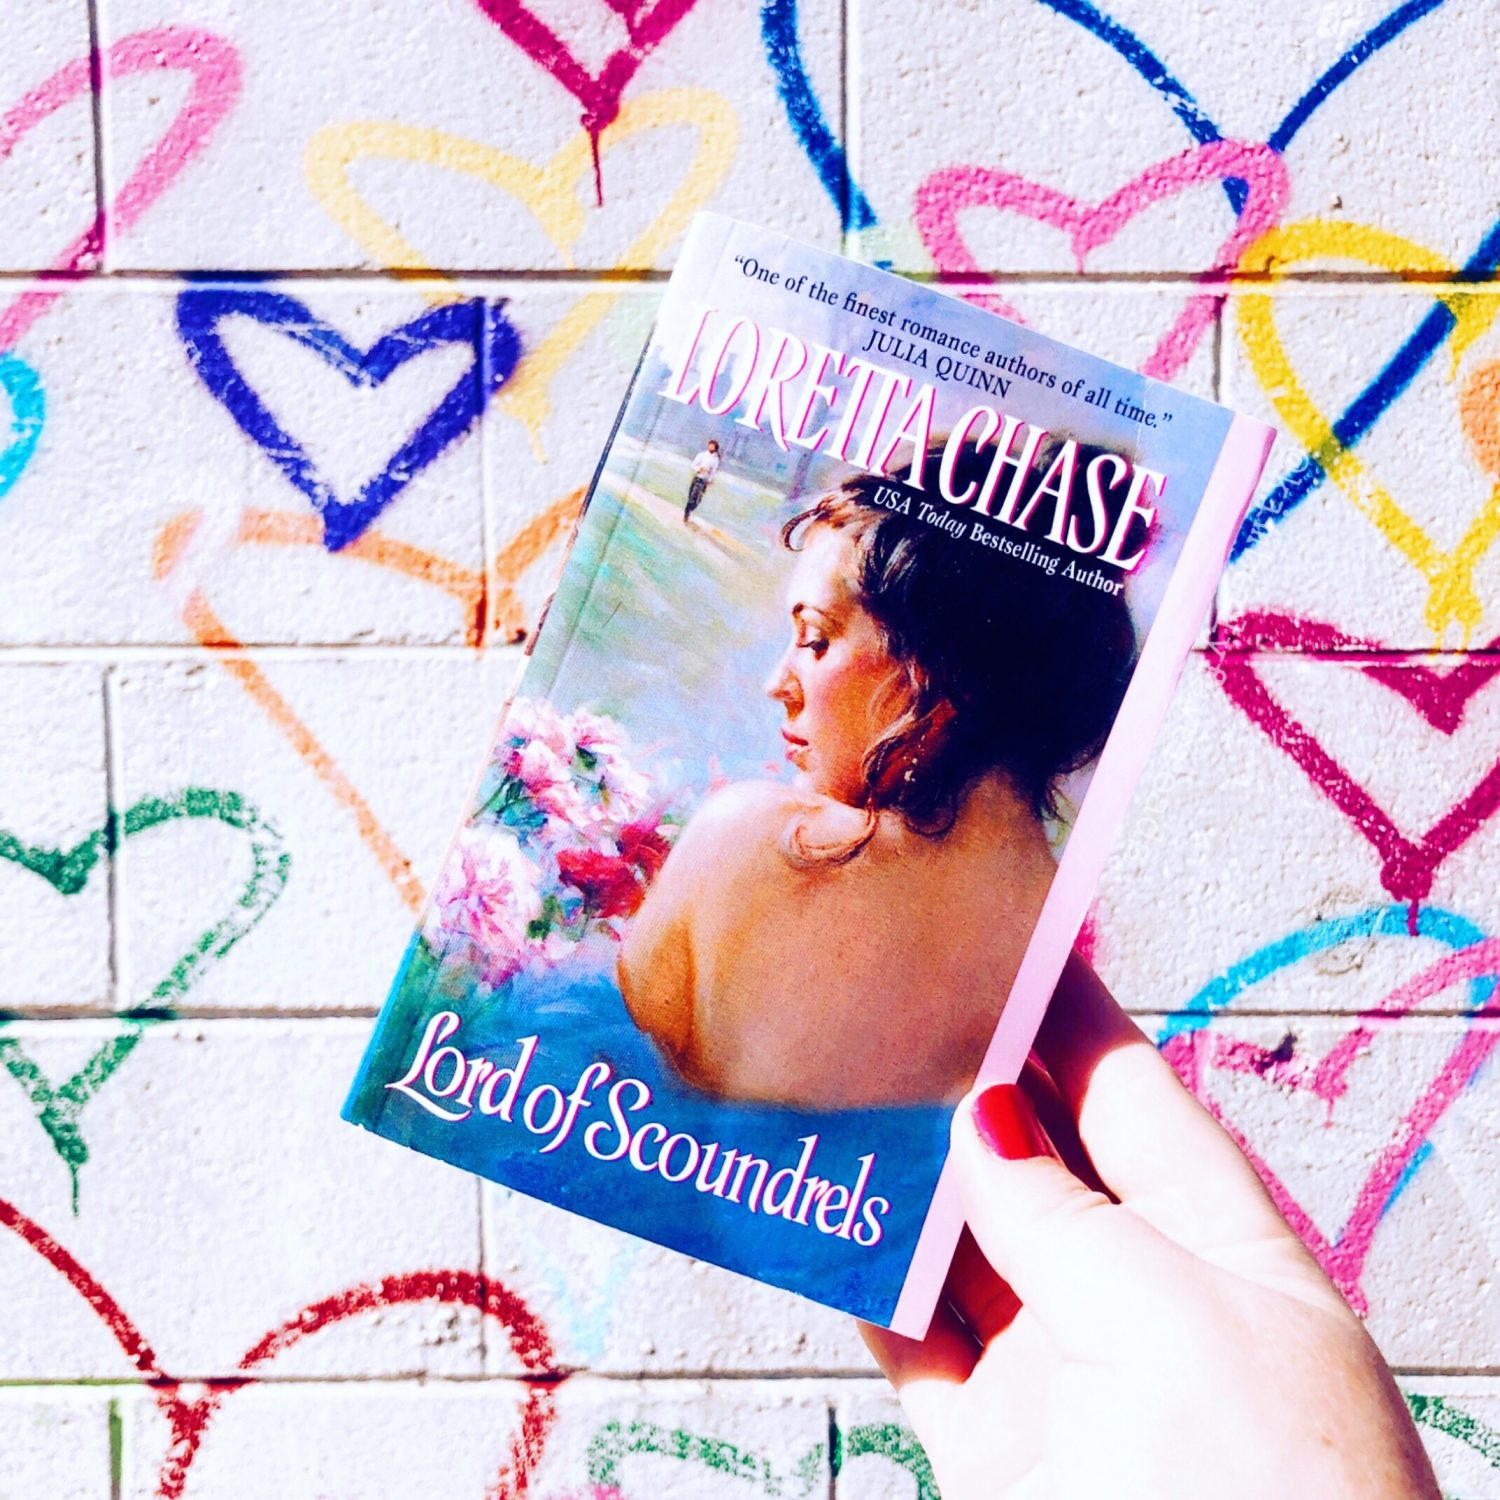 In Review: Lord of Scoundrels (Scoundrels #3) by Loretta Chase